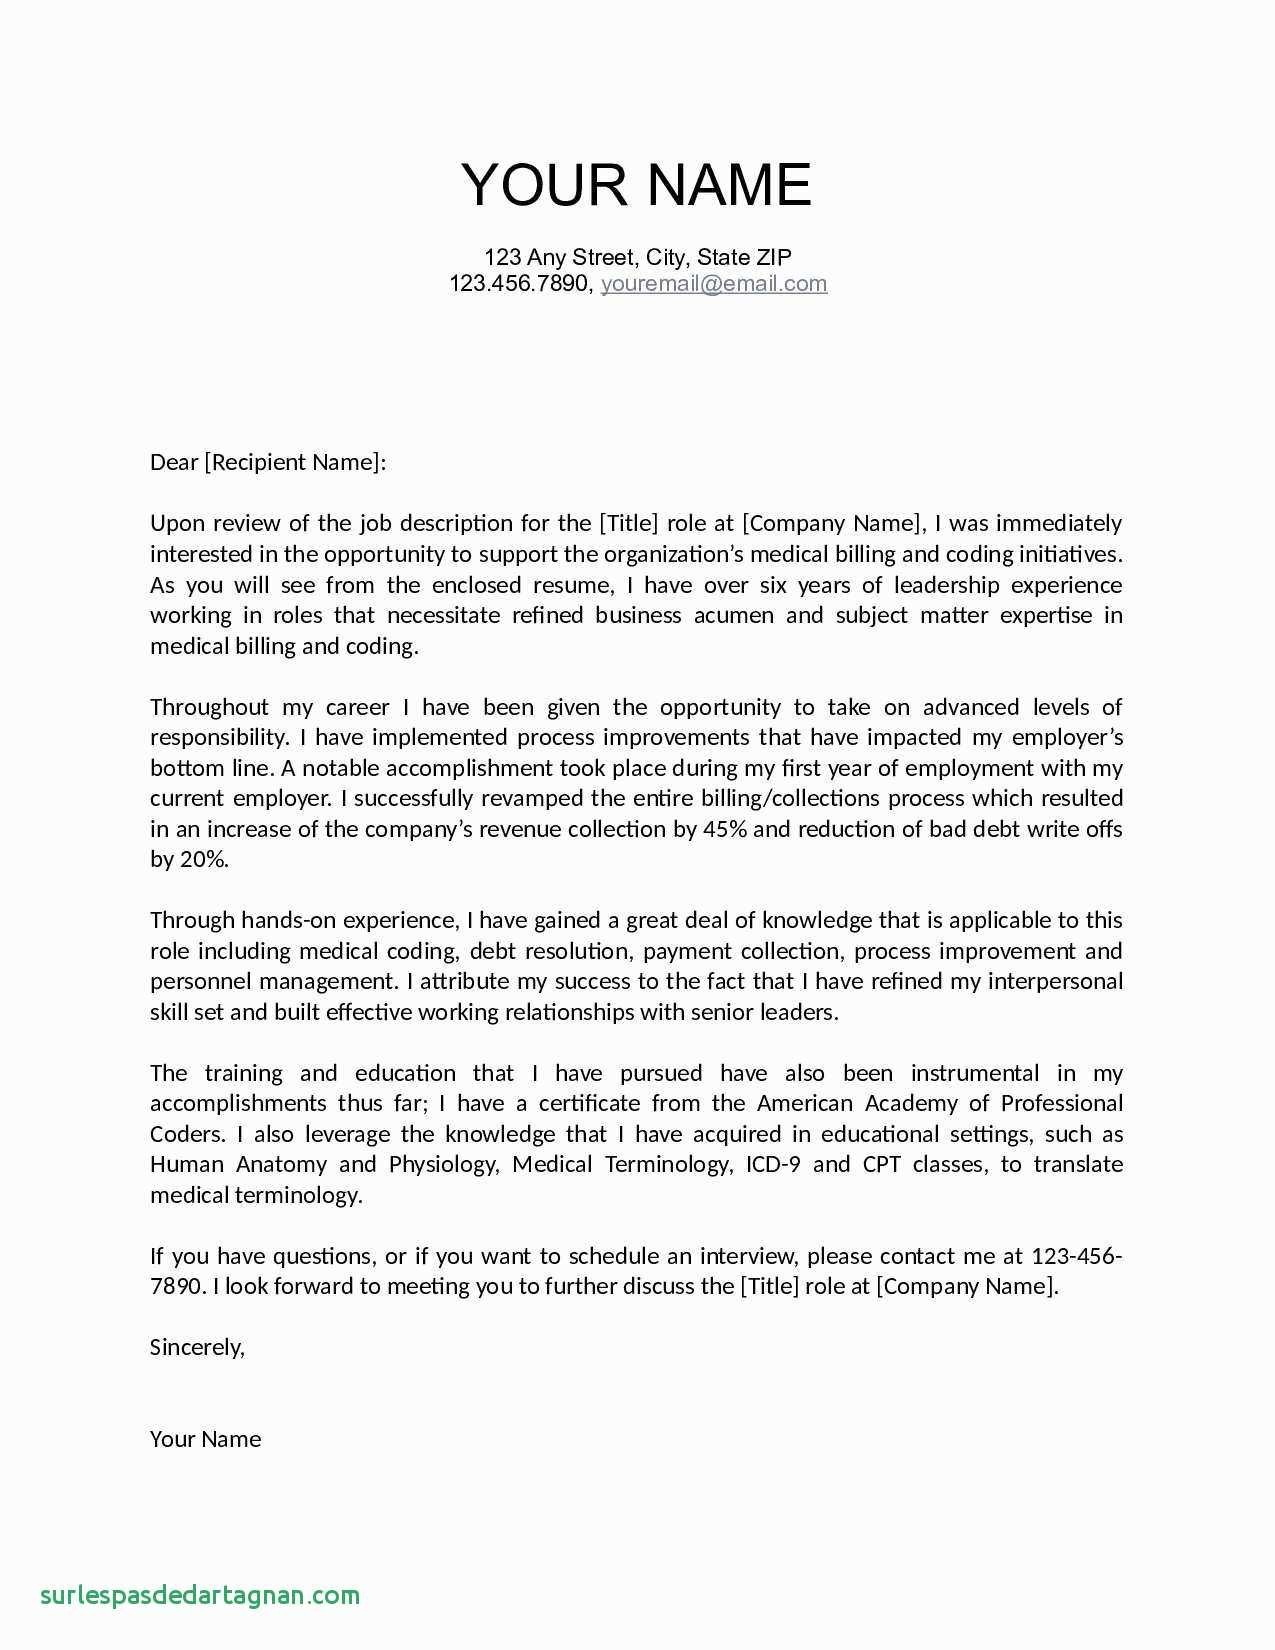 Free Legal Demand Letter Template - Resume Writing Group Reviews Unique Fresh Job Fer Letter Template Us